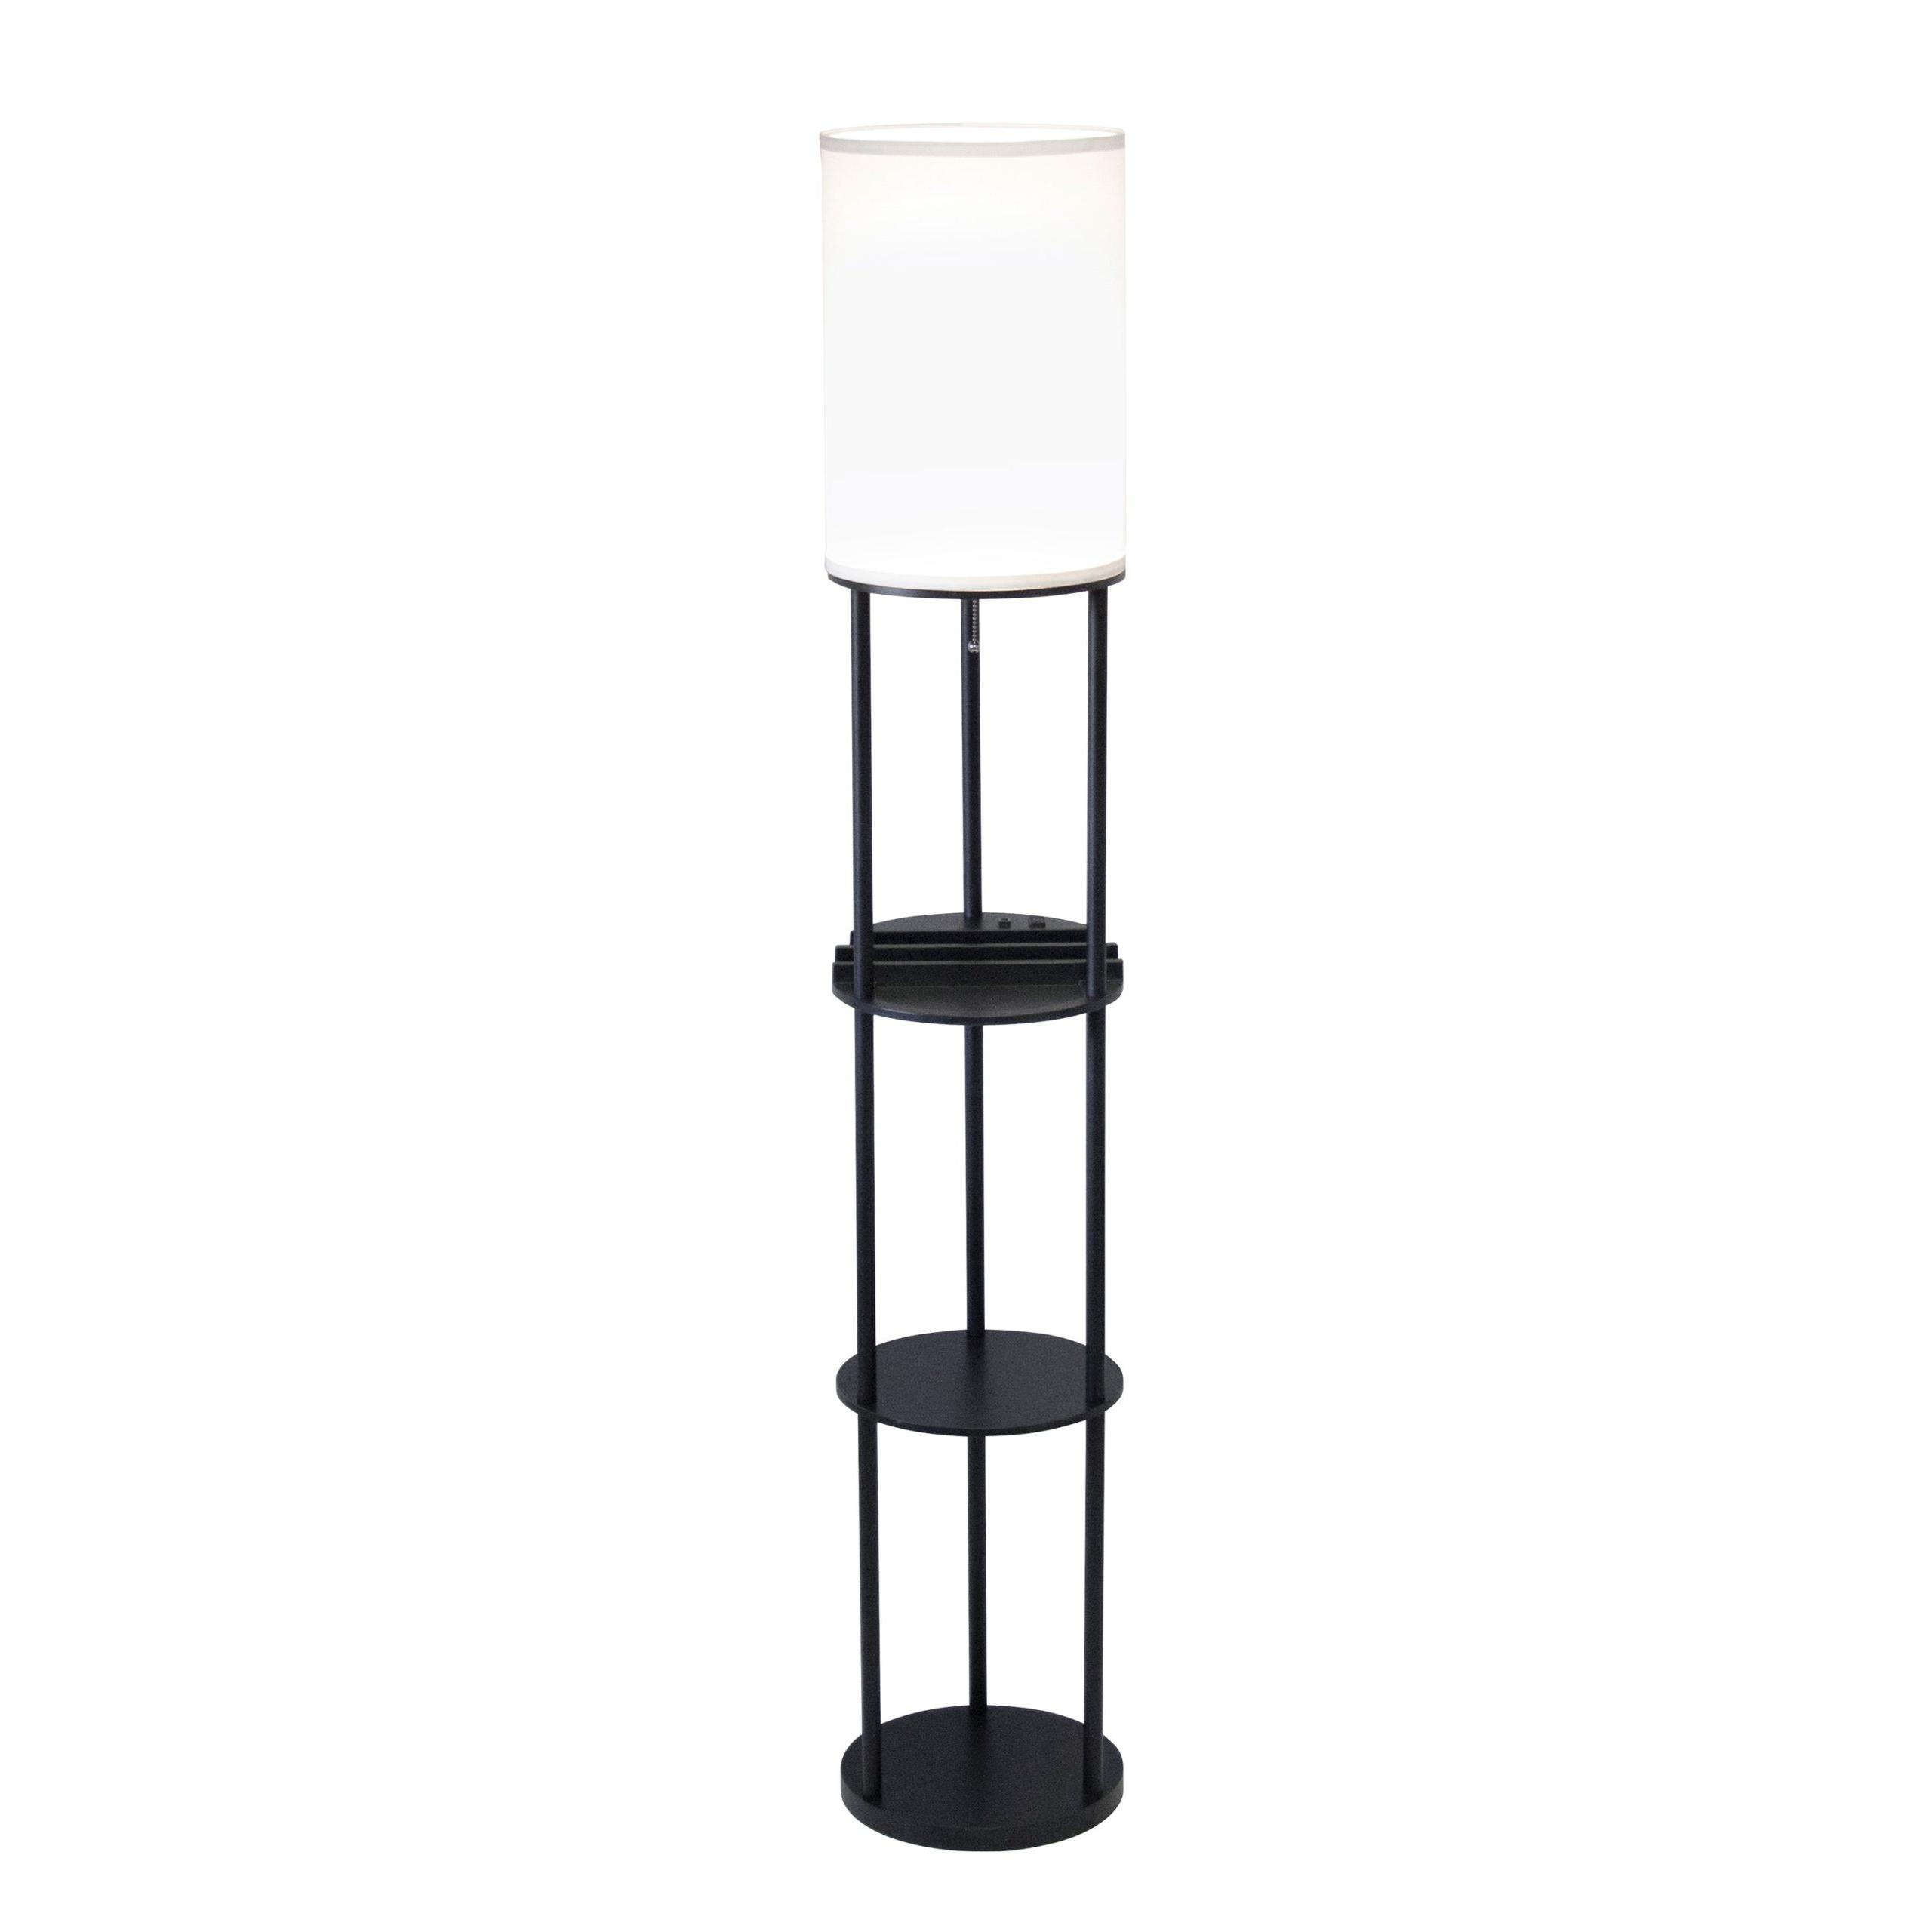 Charging Station Shelf Floor Lamp 11